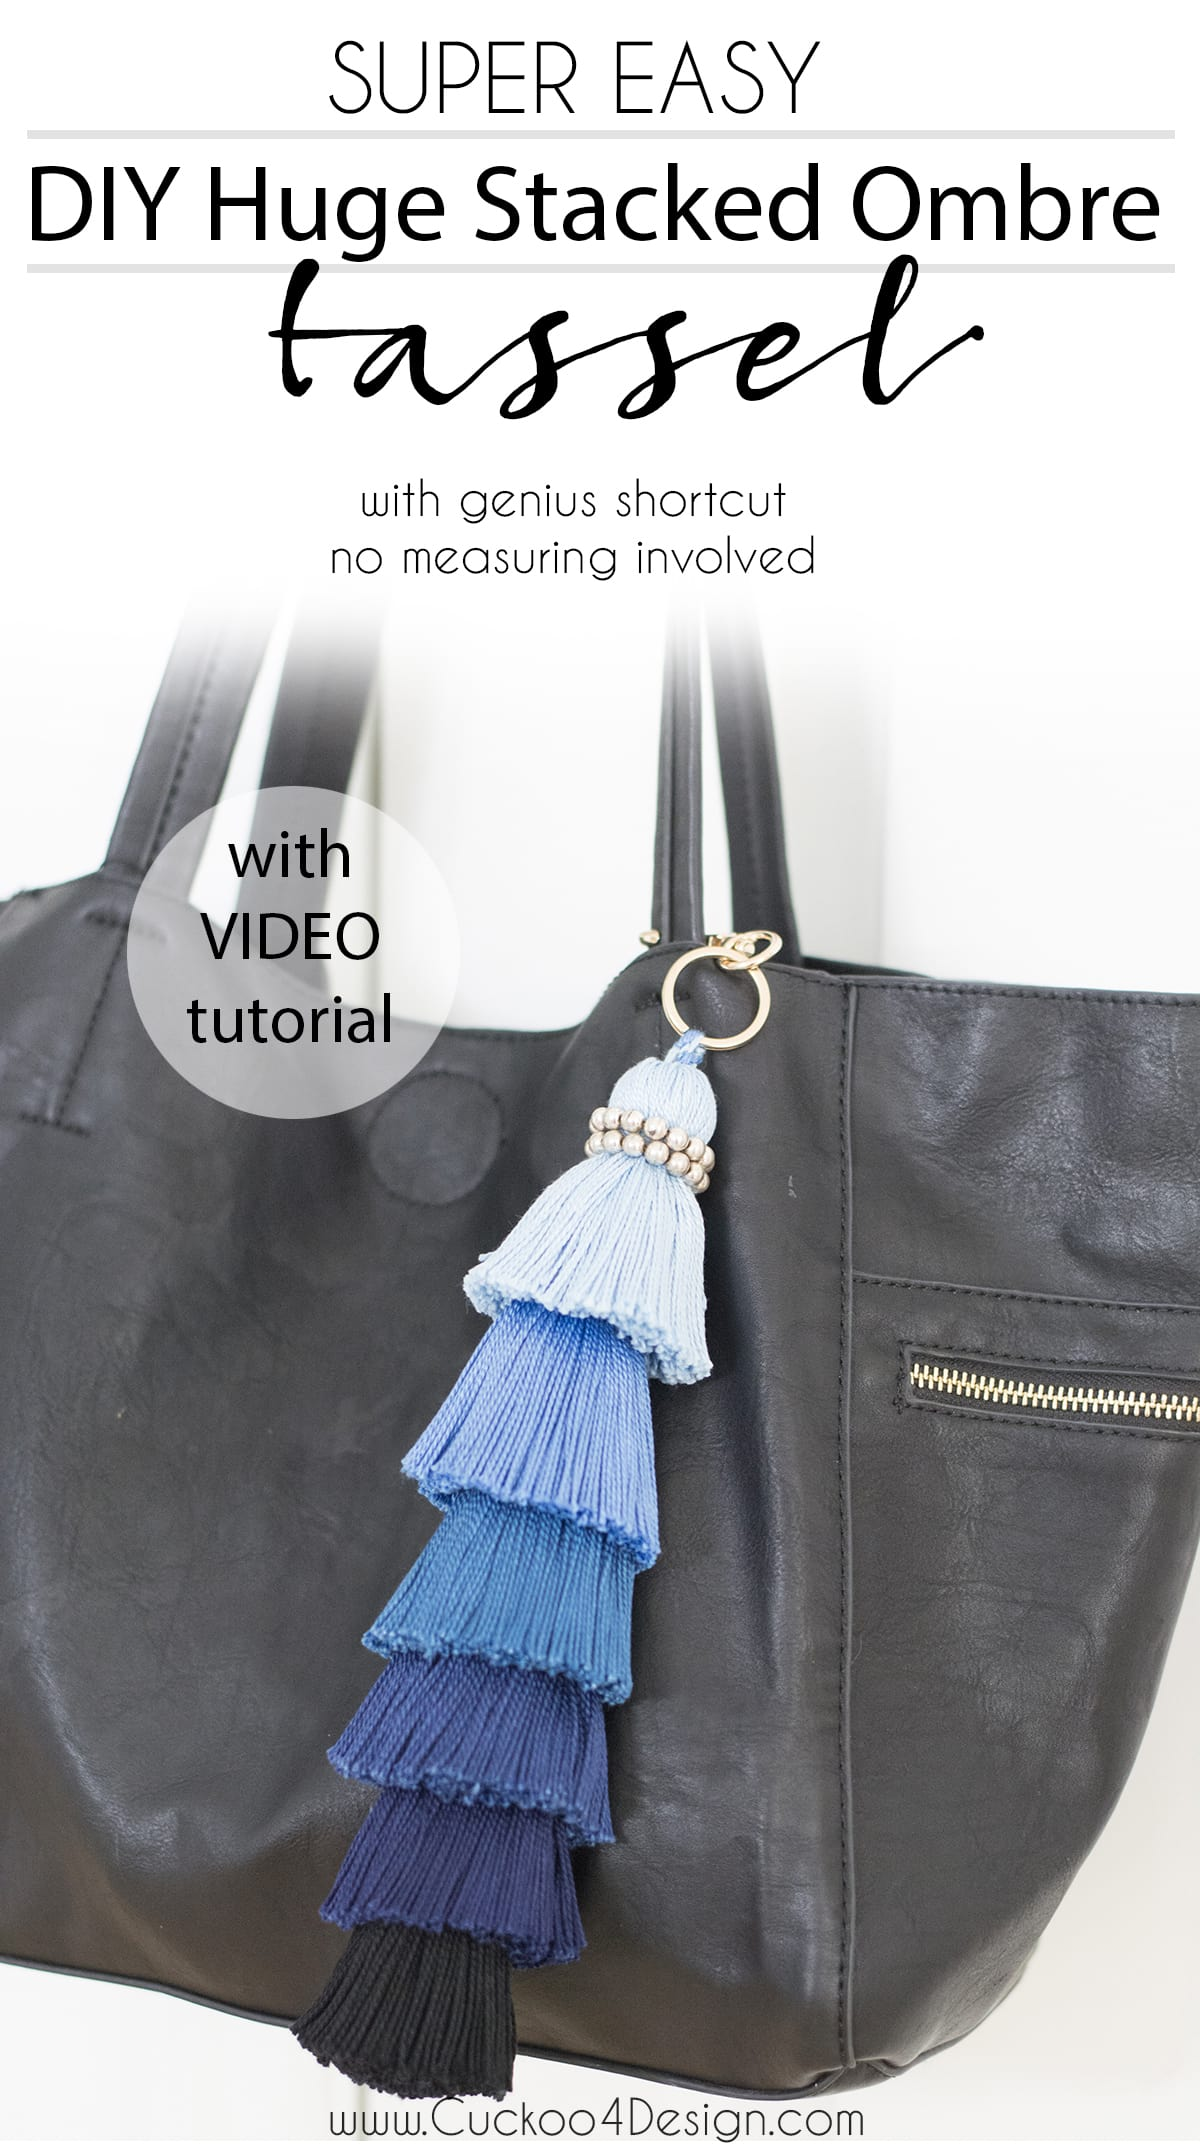 DIY huge stacked ombre tassel with genius shortcut